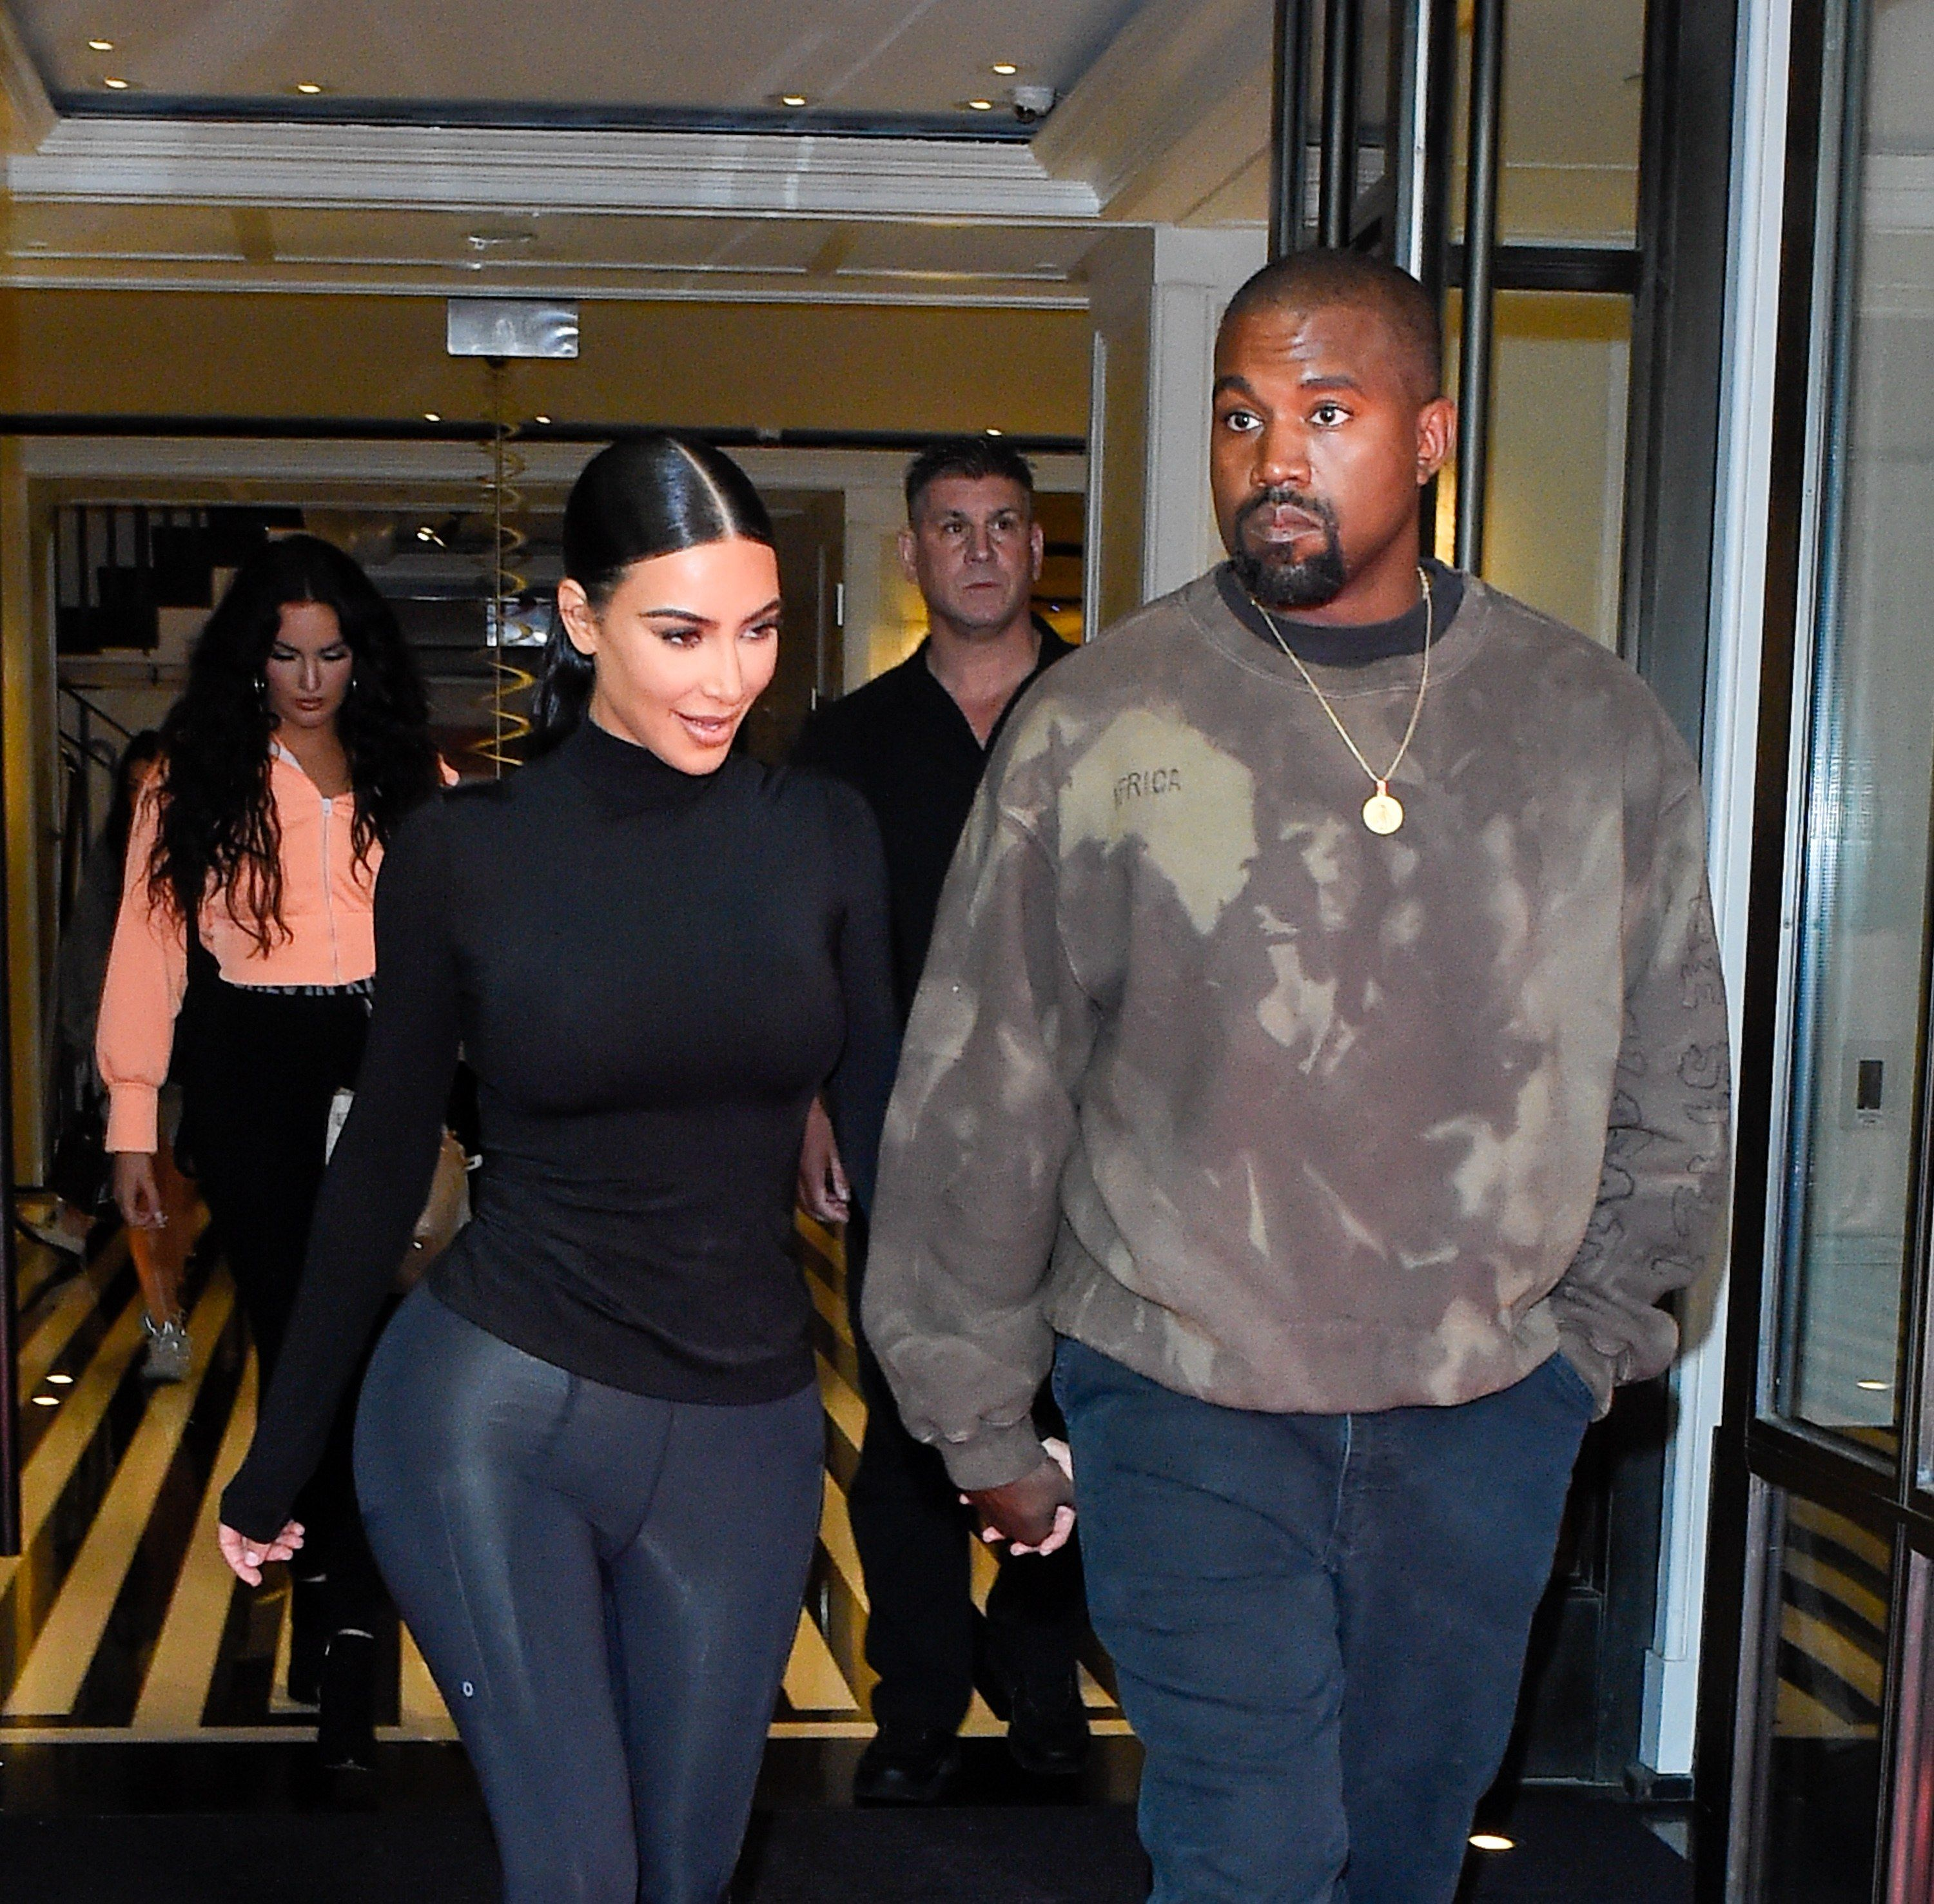 Will Kim And Kanye Move From Calabasas To Wyoming Kim And Kanye Kim Kardashian And Kanye Celebrity News Gossip